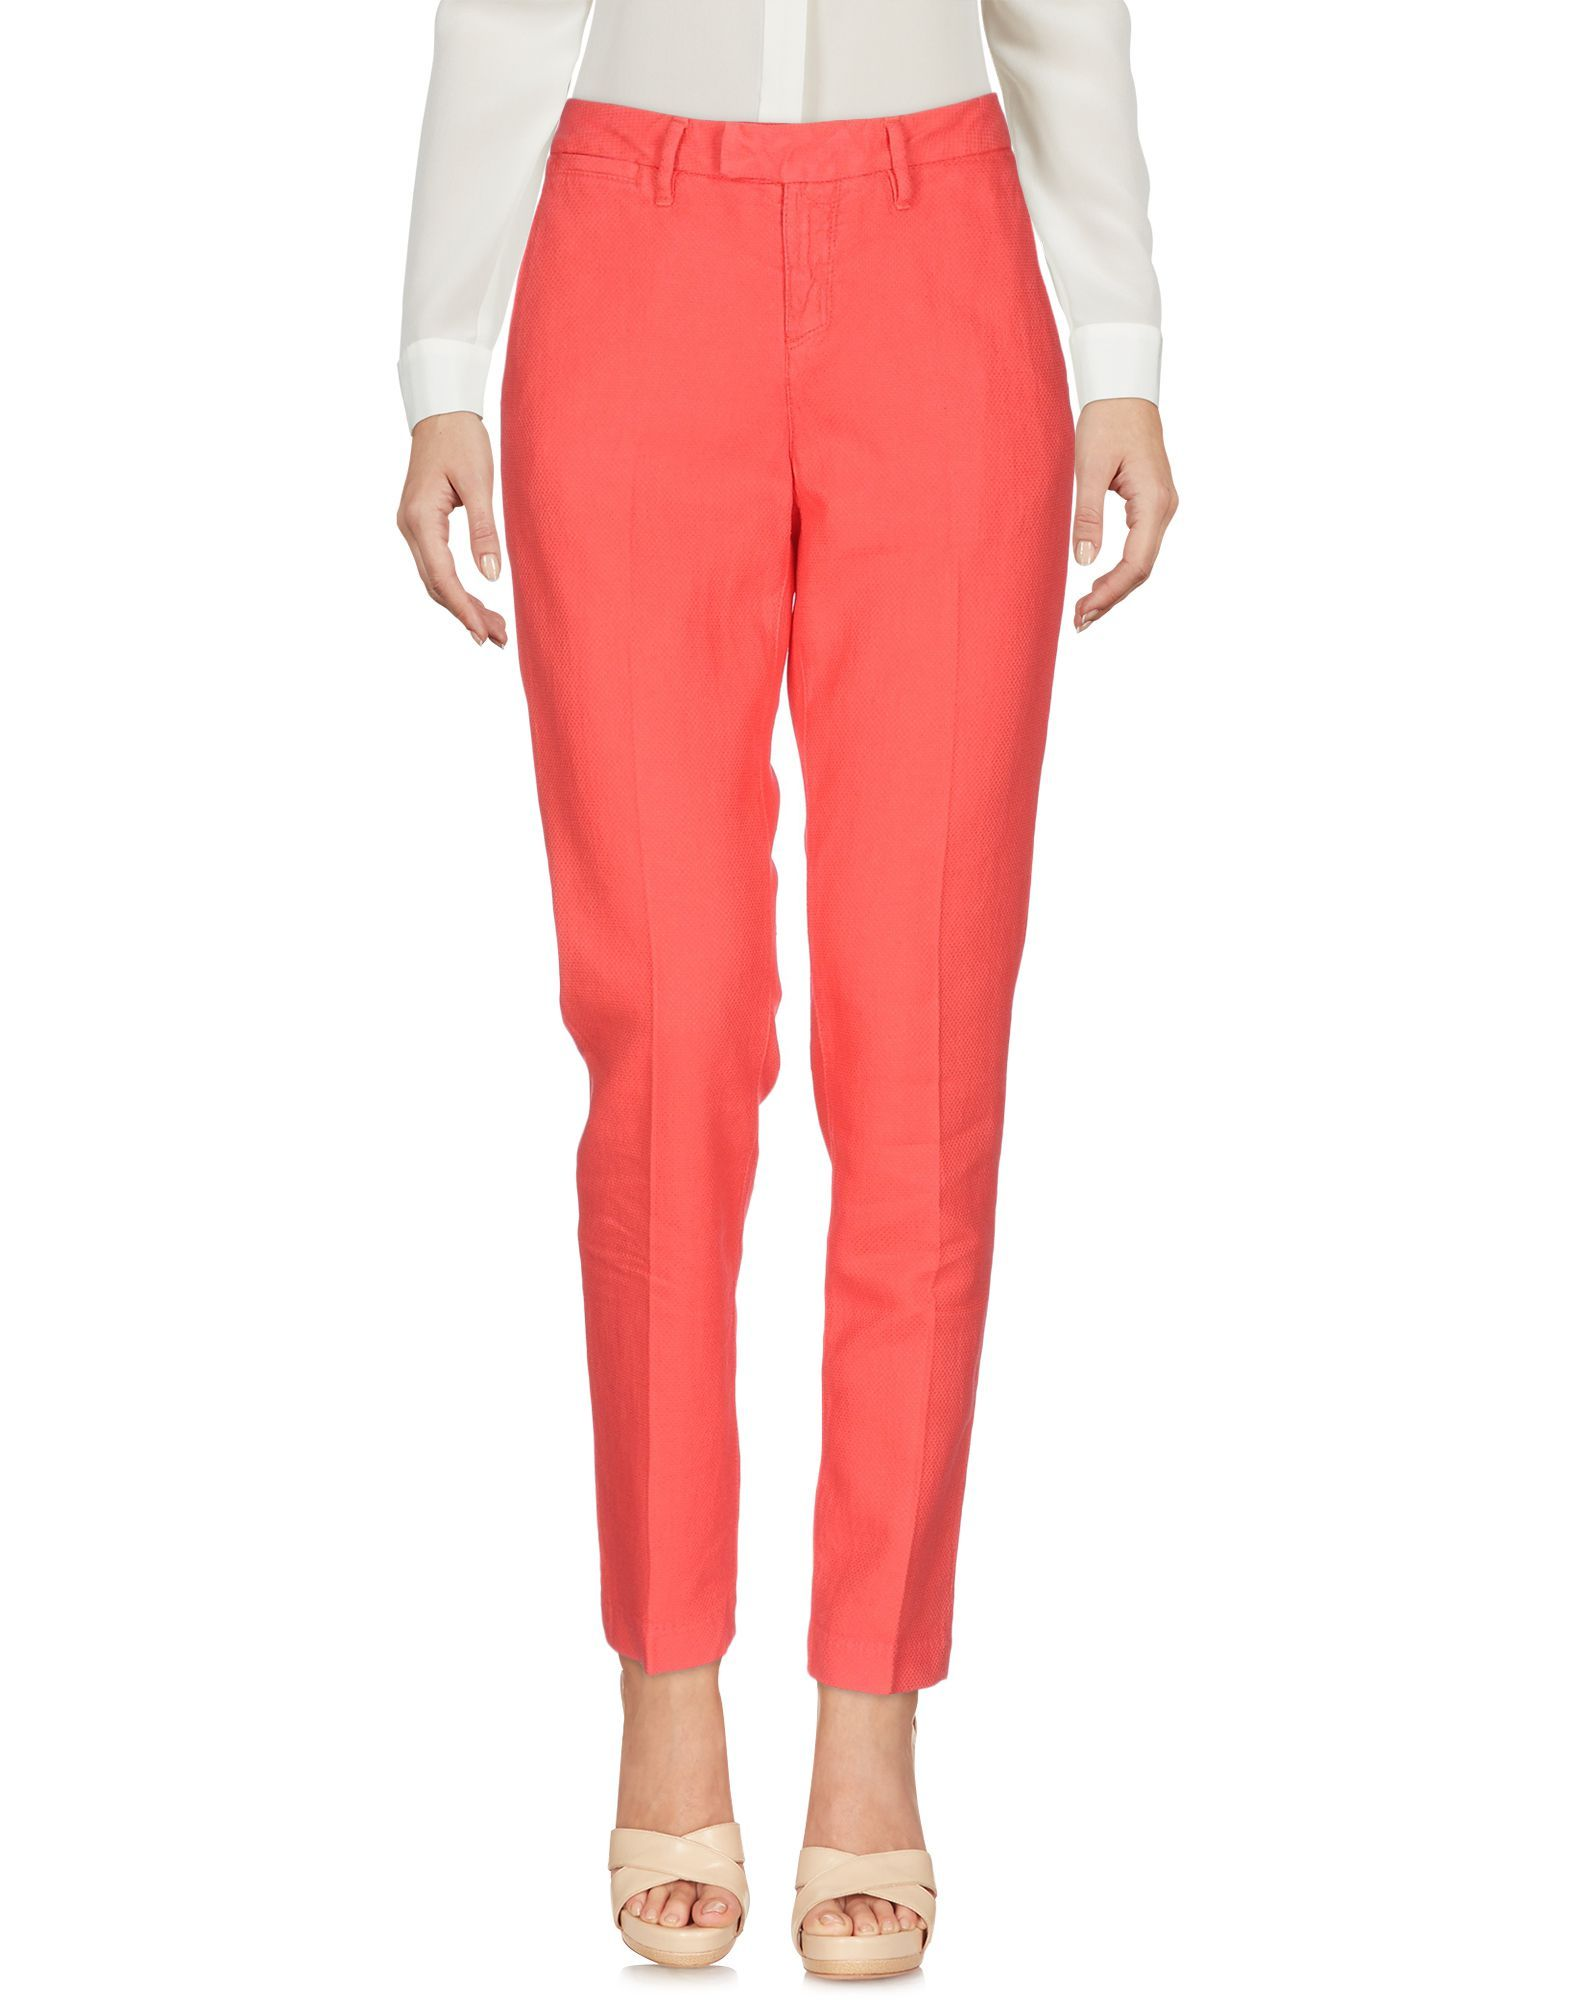 TROUSERS Haikure Coral Woman Cotton